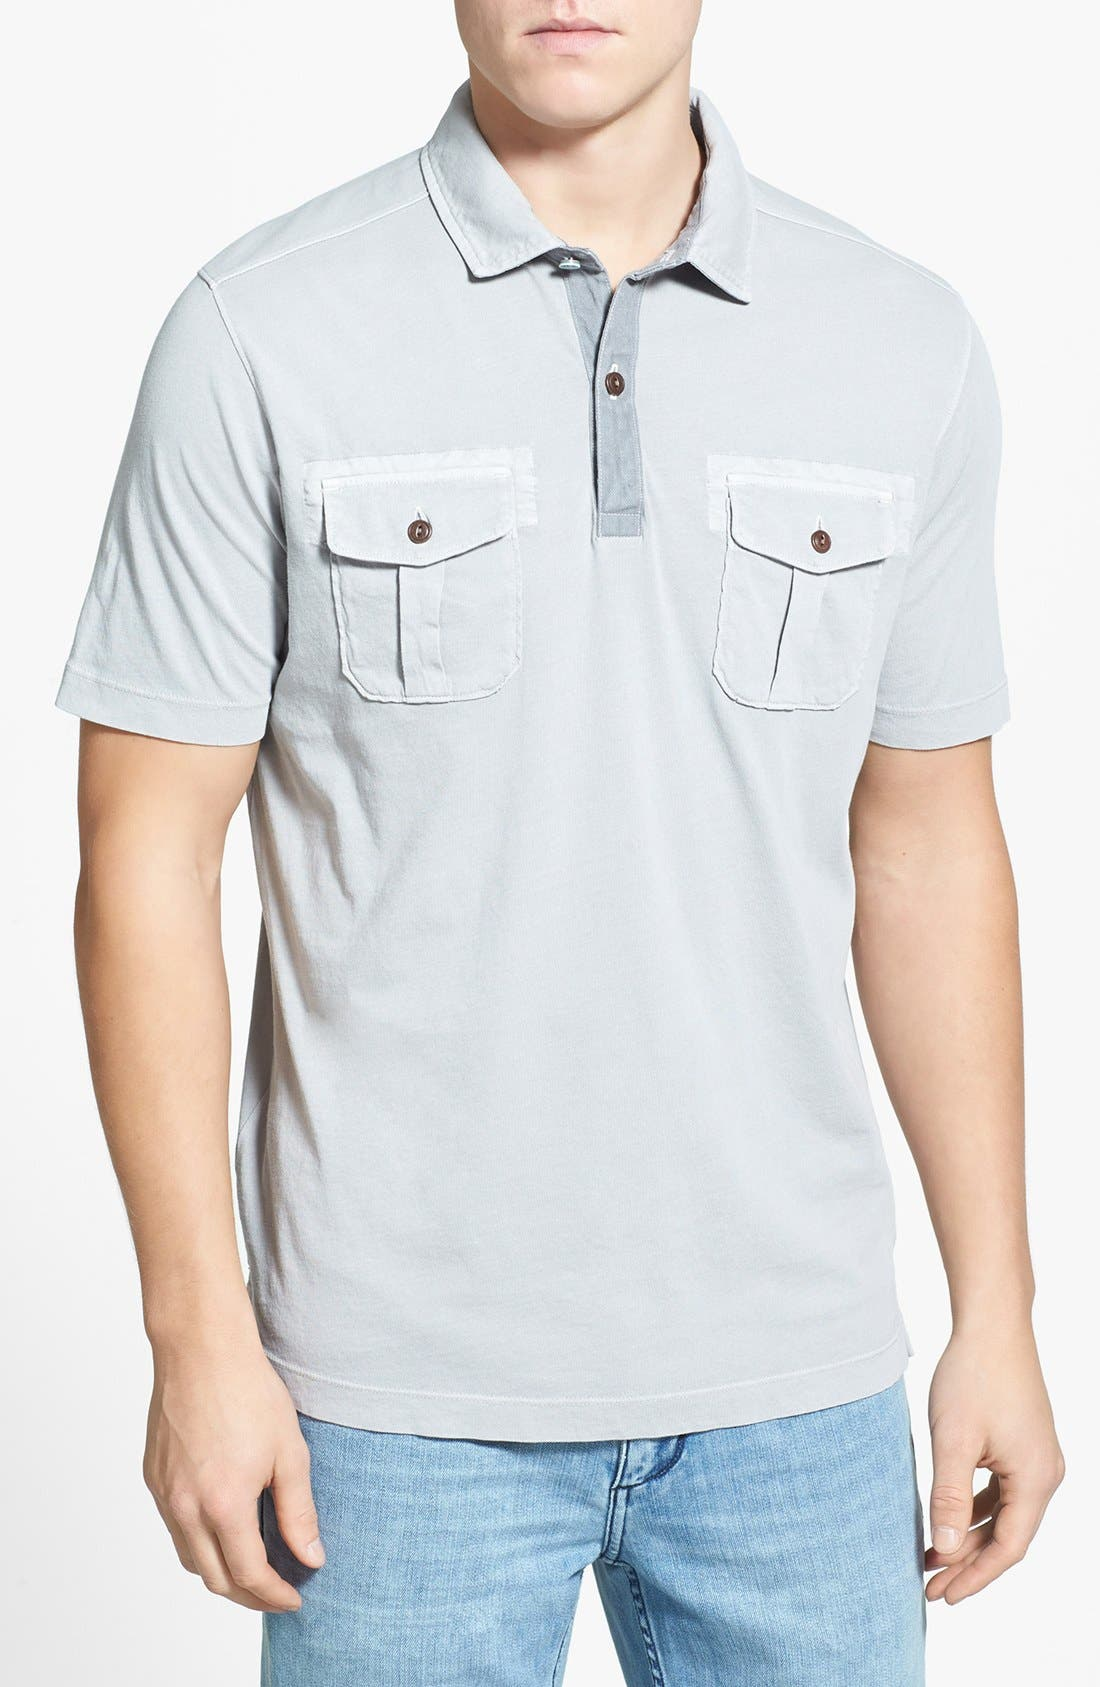 Alternate Image 1 Selected - Tommy Bahama 'Pilot' Island Modern Fit Polo